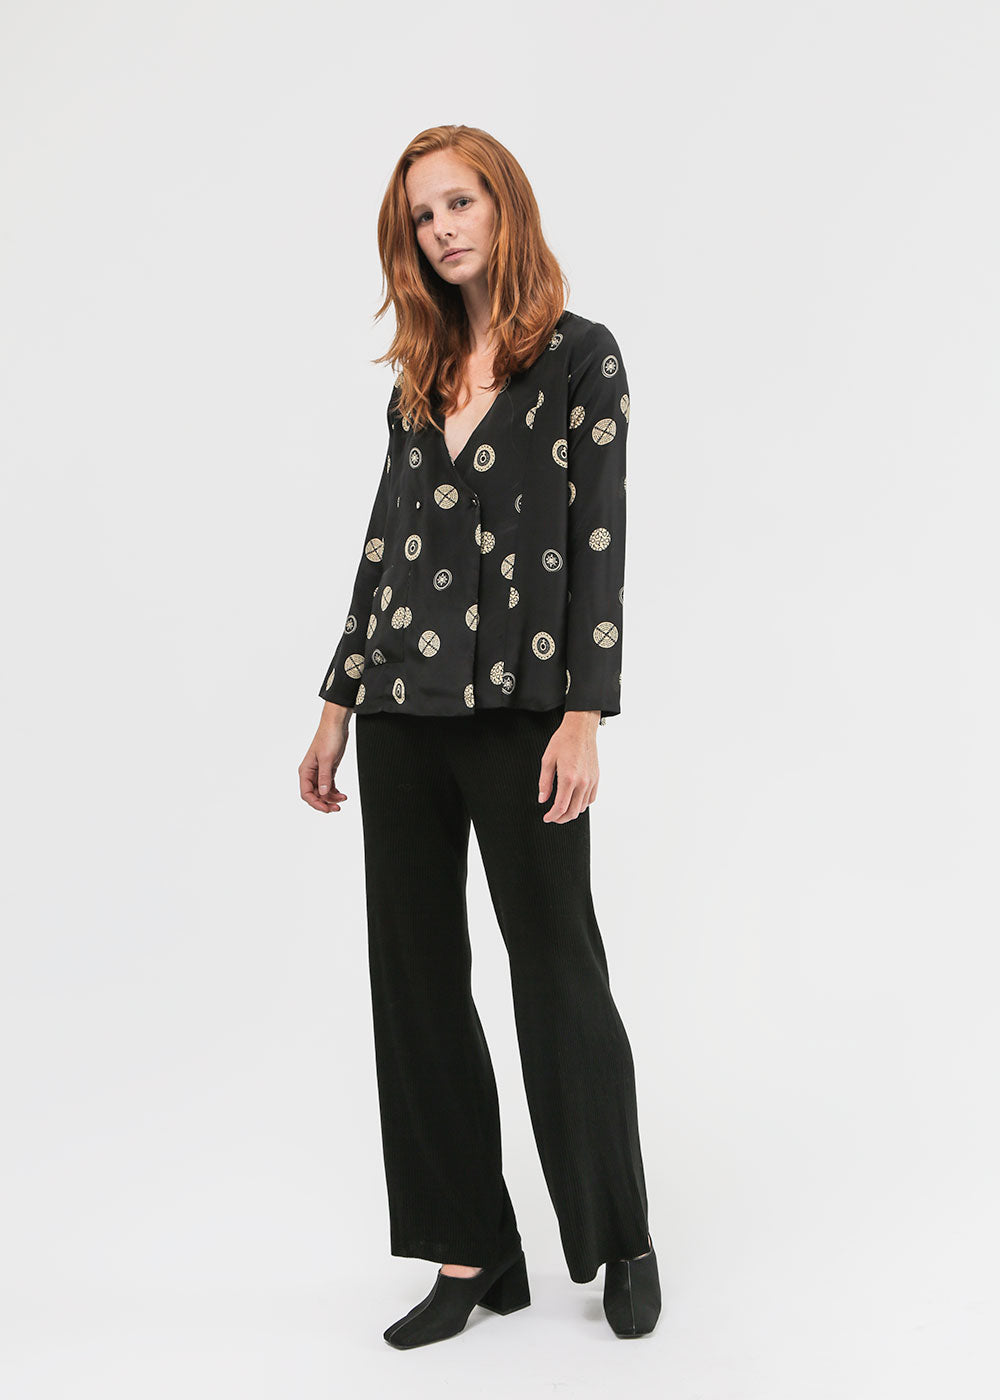 Suzanne Rae Button Up Blazer — Shop sustainable fashion and slow fashion at New Classics Studios